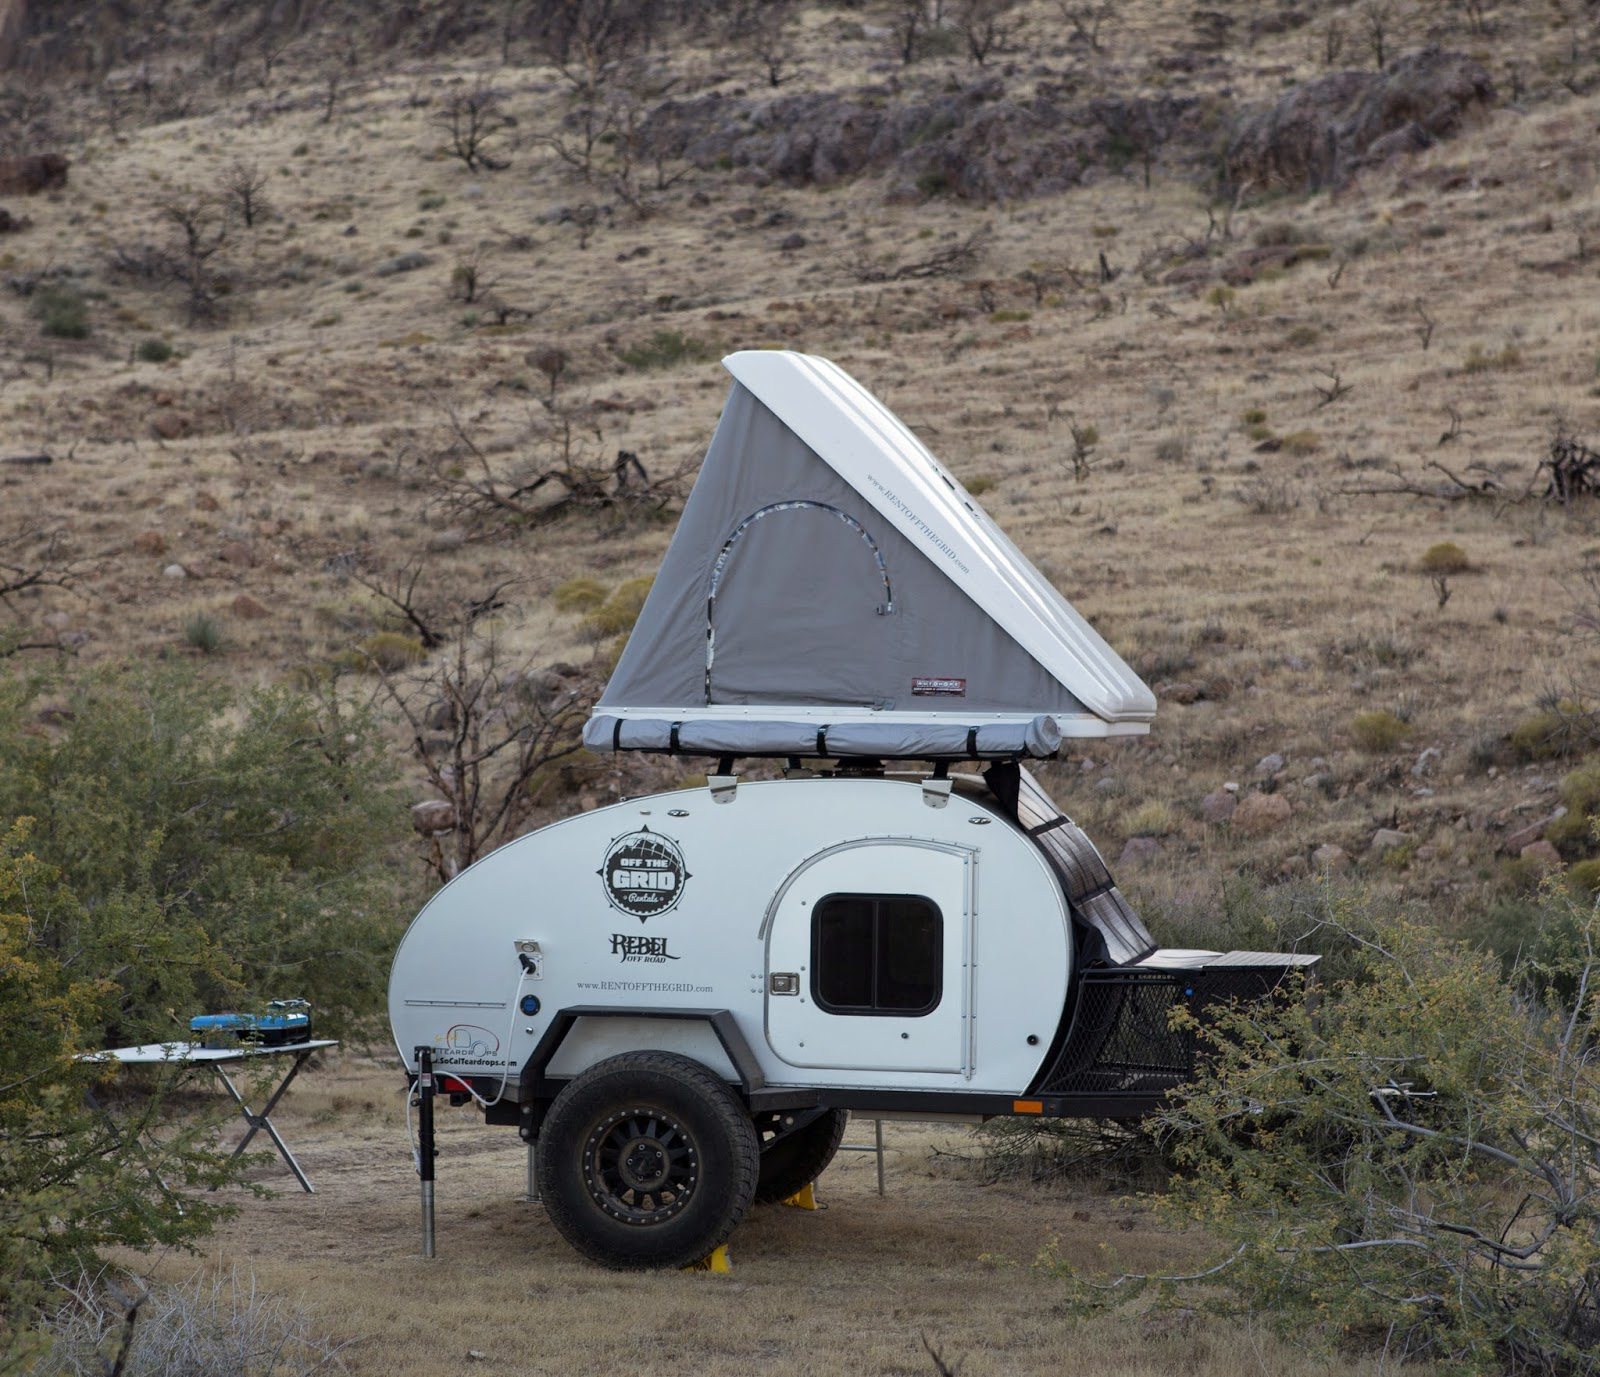 New Most Offroad  On A Desert Camping Trip He Ended Up Buying A Rugged Teardrop Trailer And A Few Tents, But Was Left Wanting A More Affordable Option So In April 2014, He Set Up His Rental Company In The Corner Of A Friends Offroad